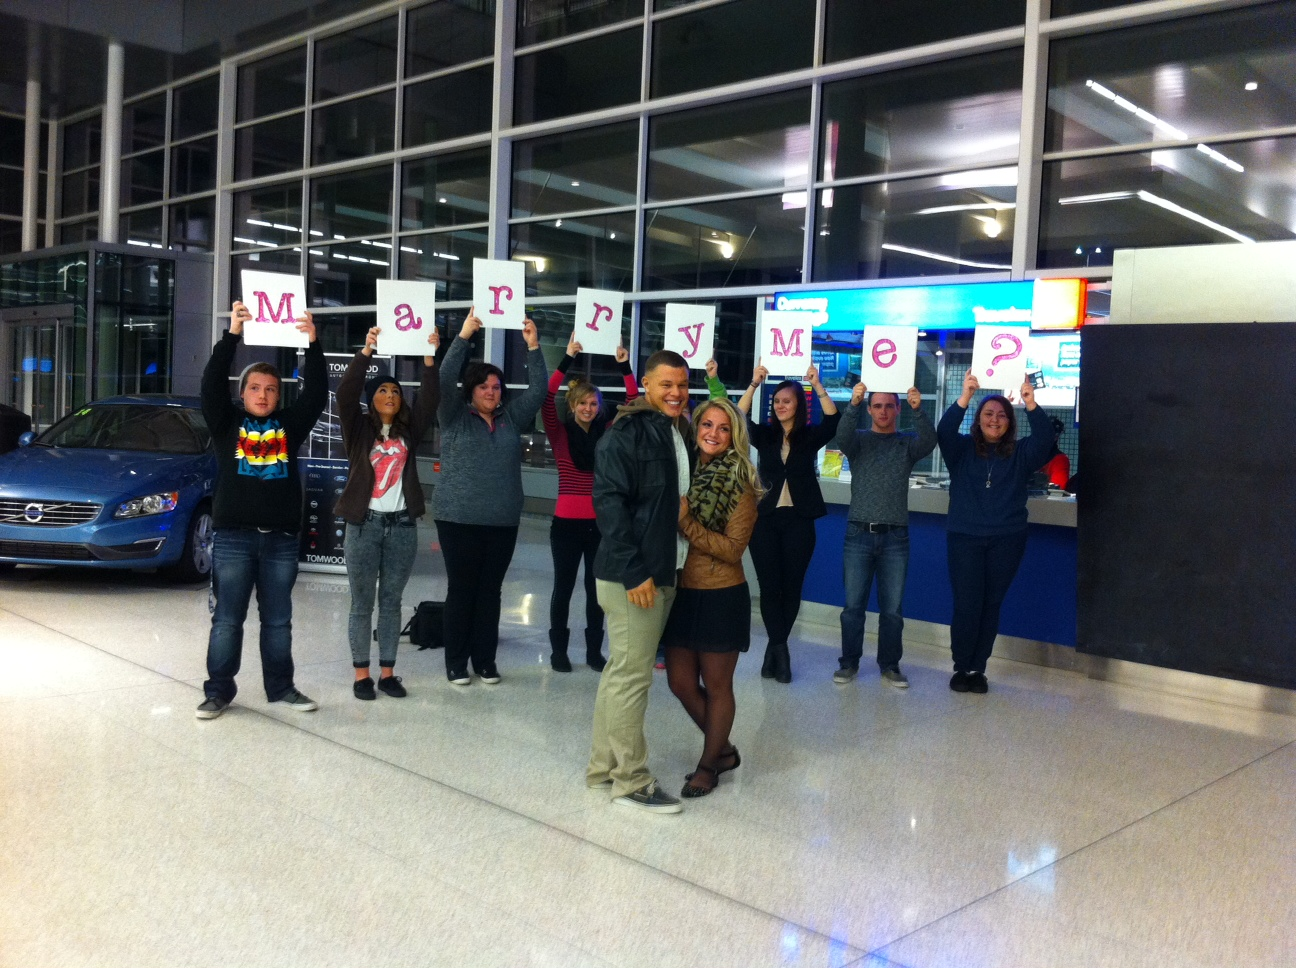 Image 8 of Gabrielle and Christian | Airport Proposal